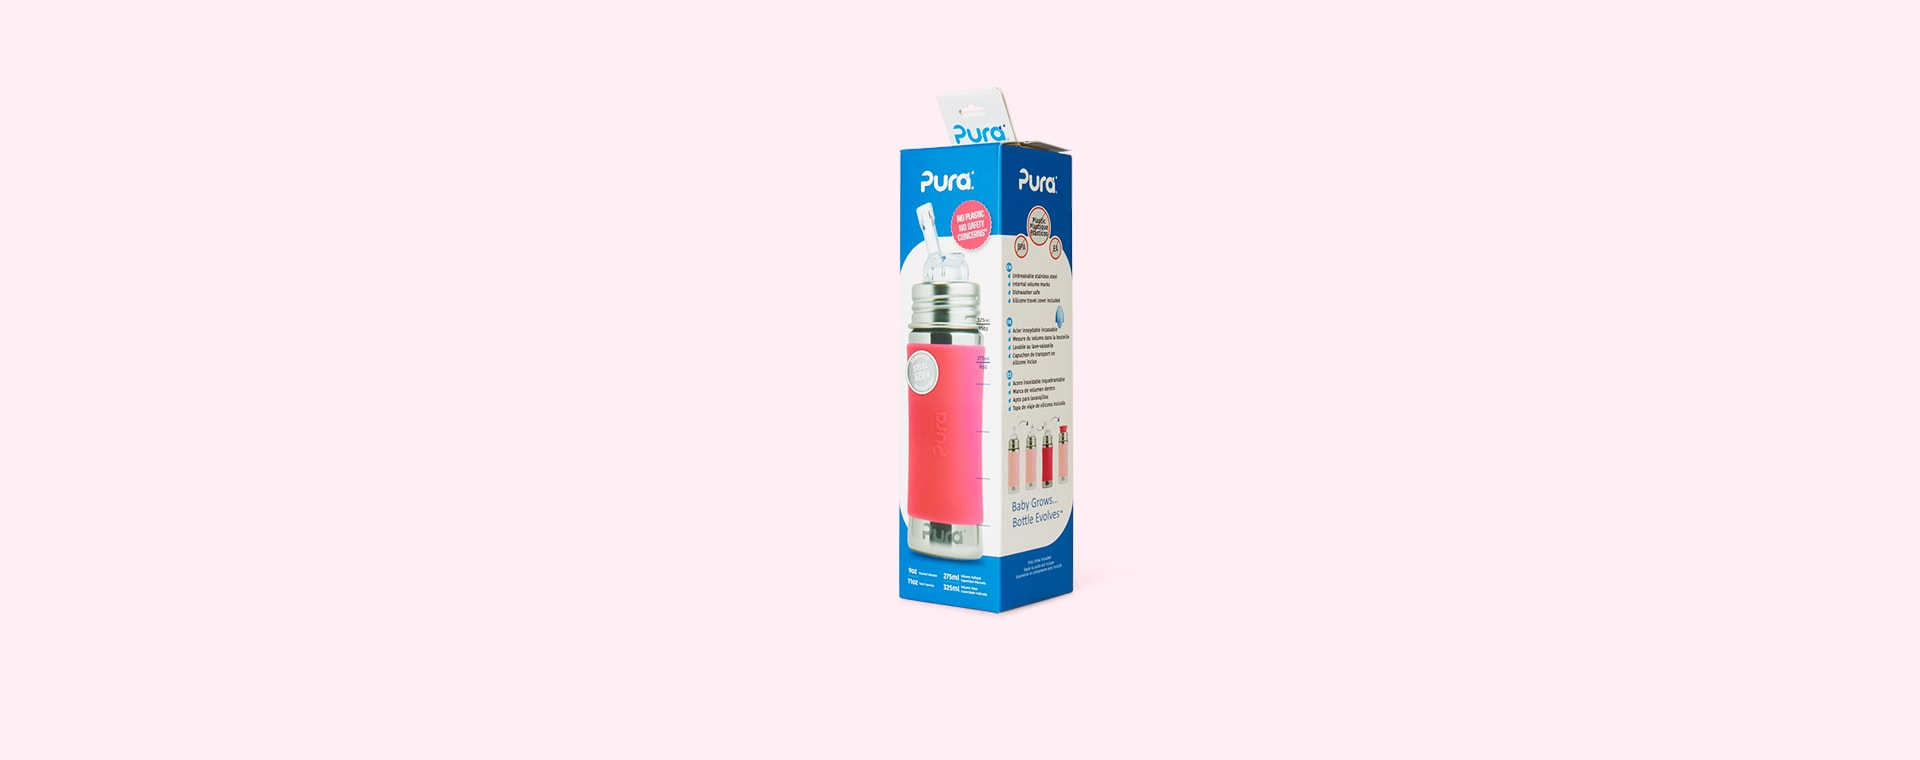 Pink Pura 11oz Straw Bottle